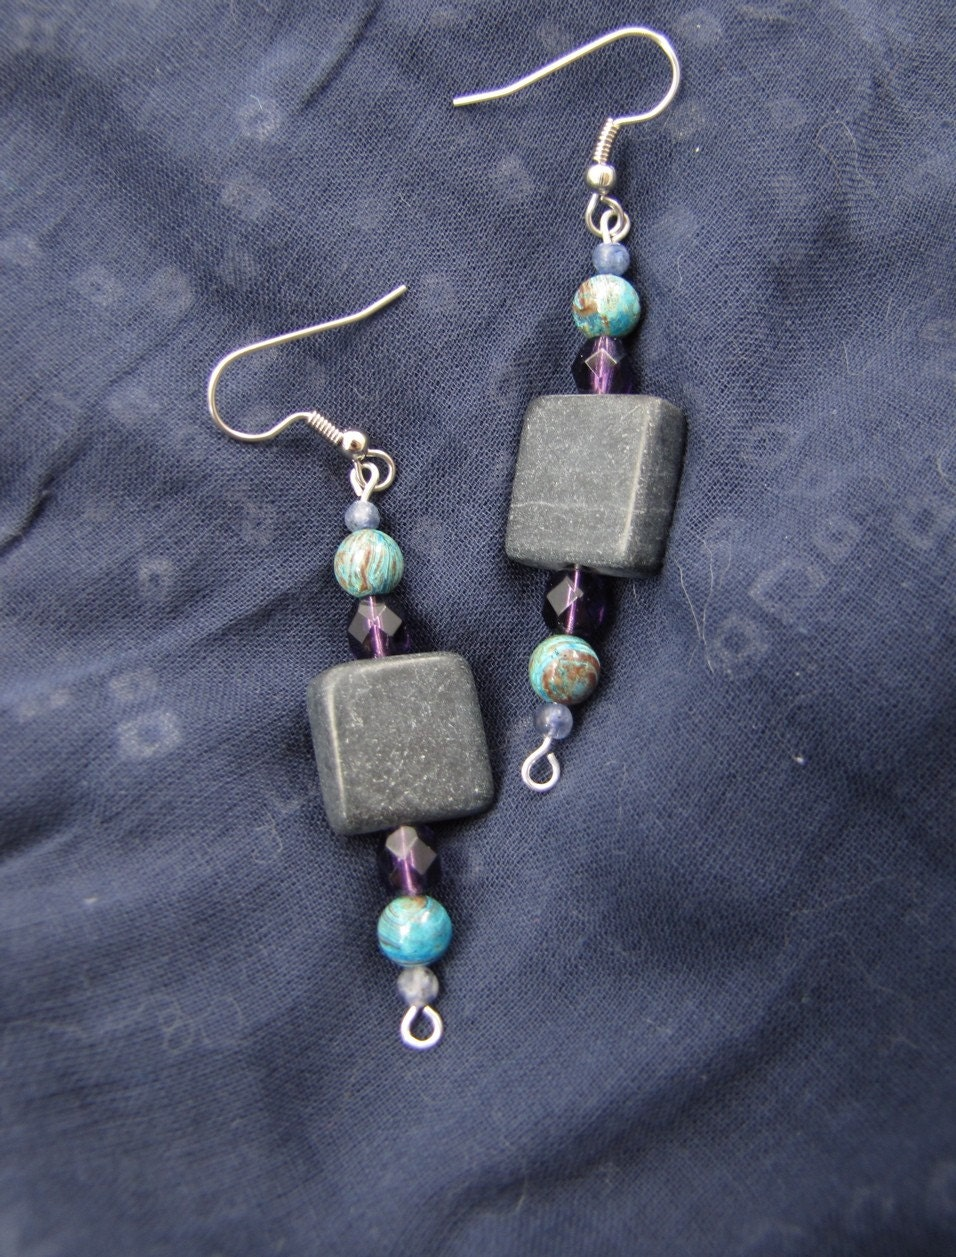 central square of blackstone, with symmetrical beads on either side: faceted purple glass dodecahedron, swirly blue-and-brown 6mm jasper bead, tiny iolite bead